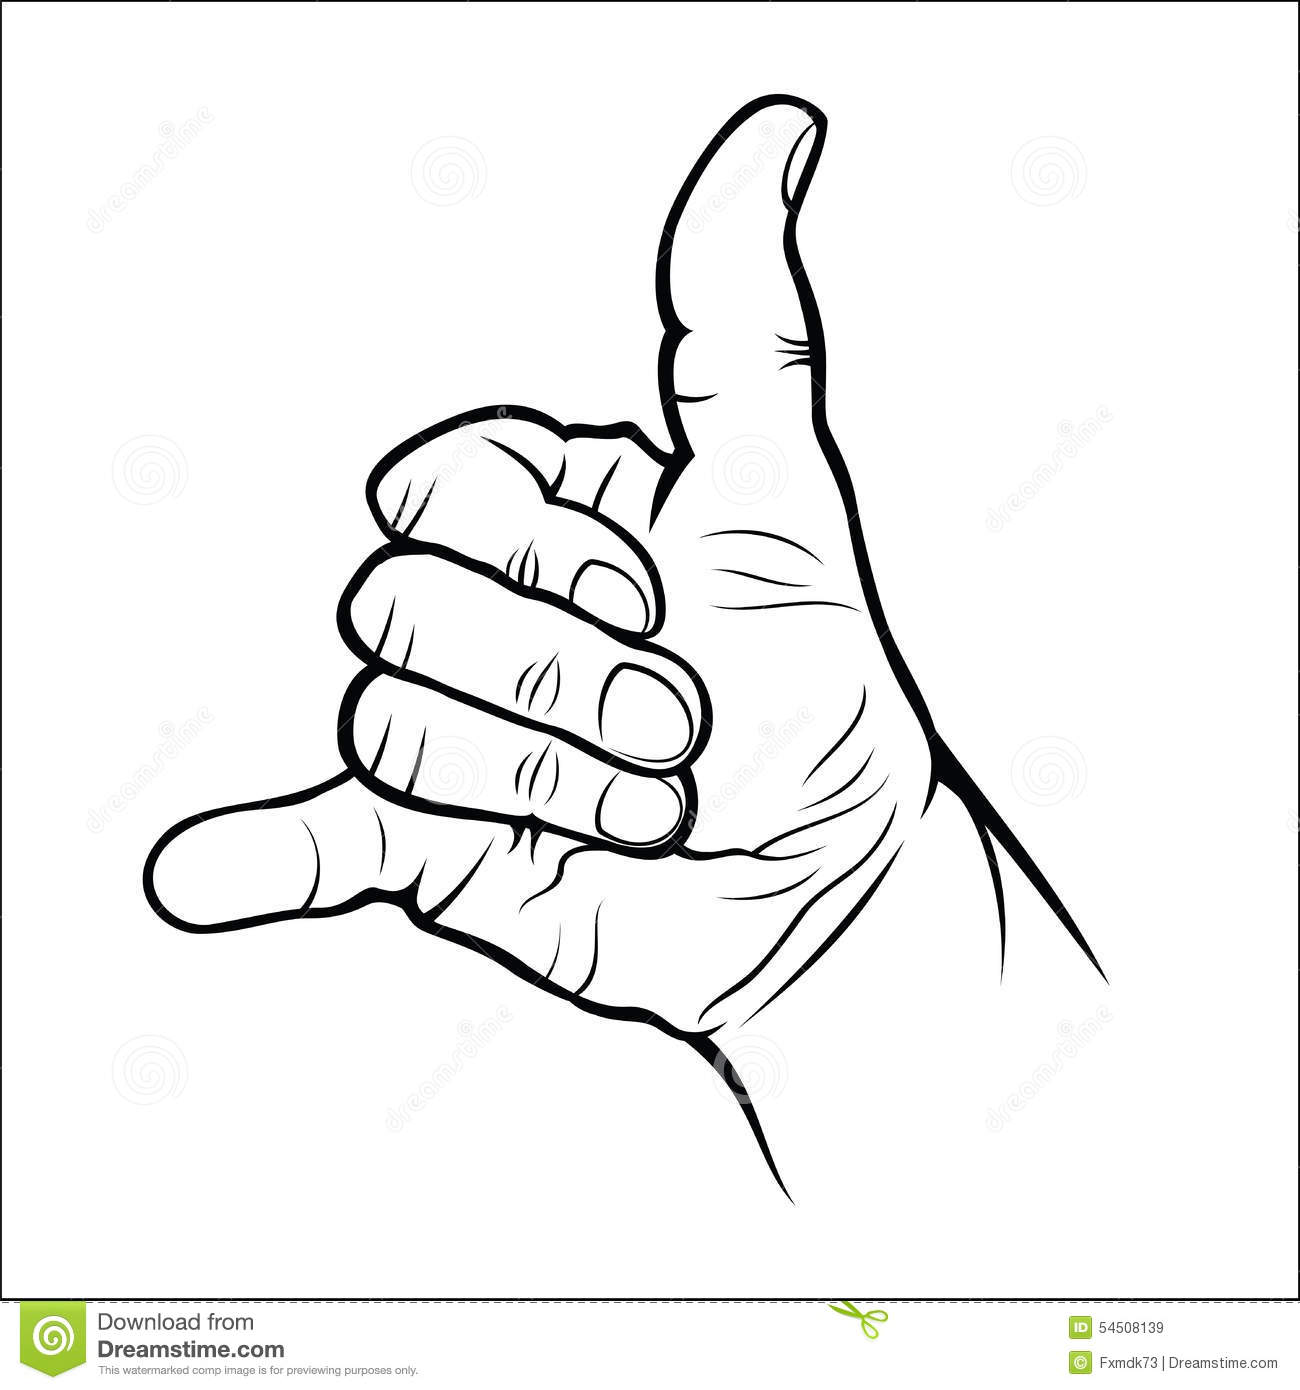 Hand Gestures - Call Me Stock Vector - Image: 54508139